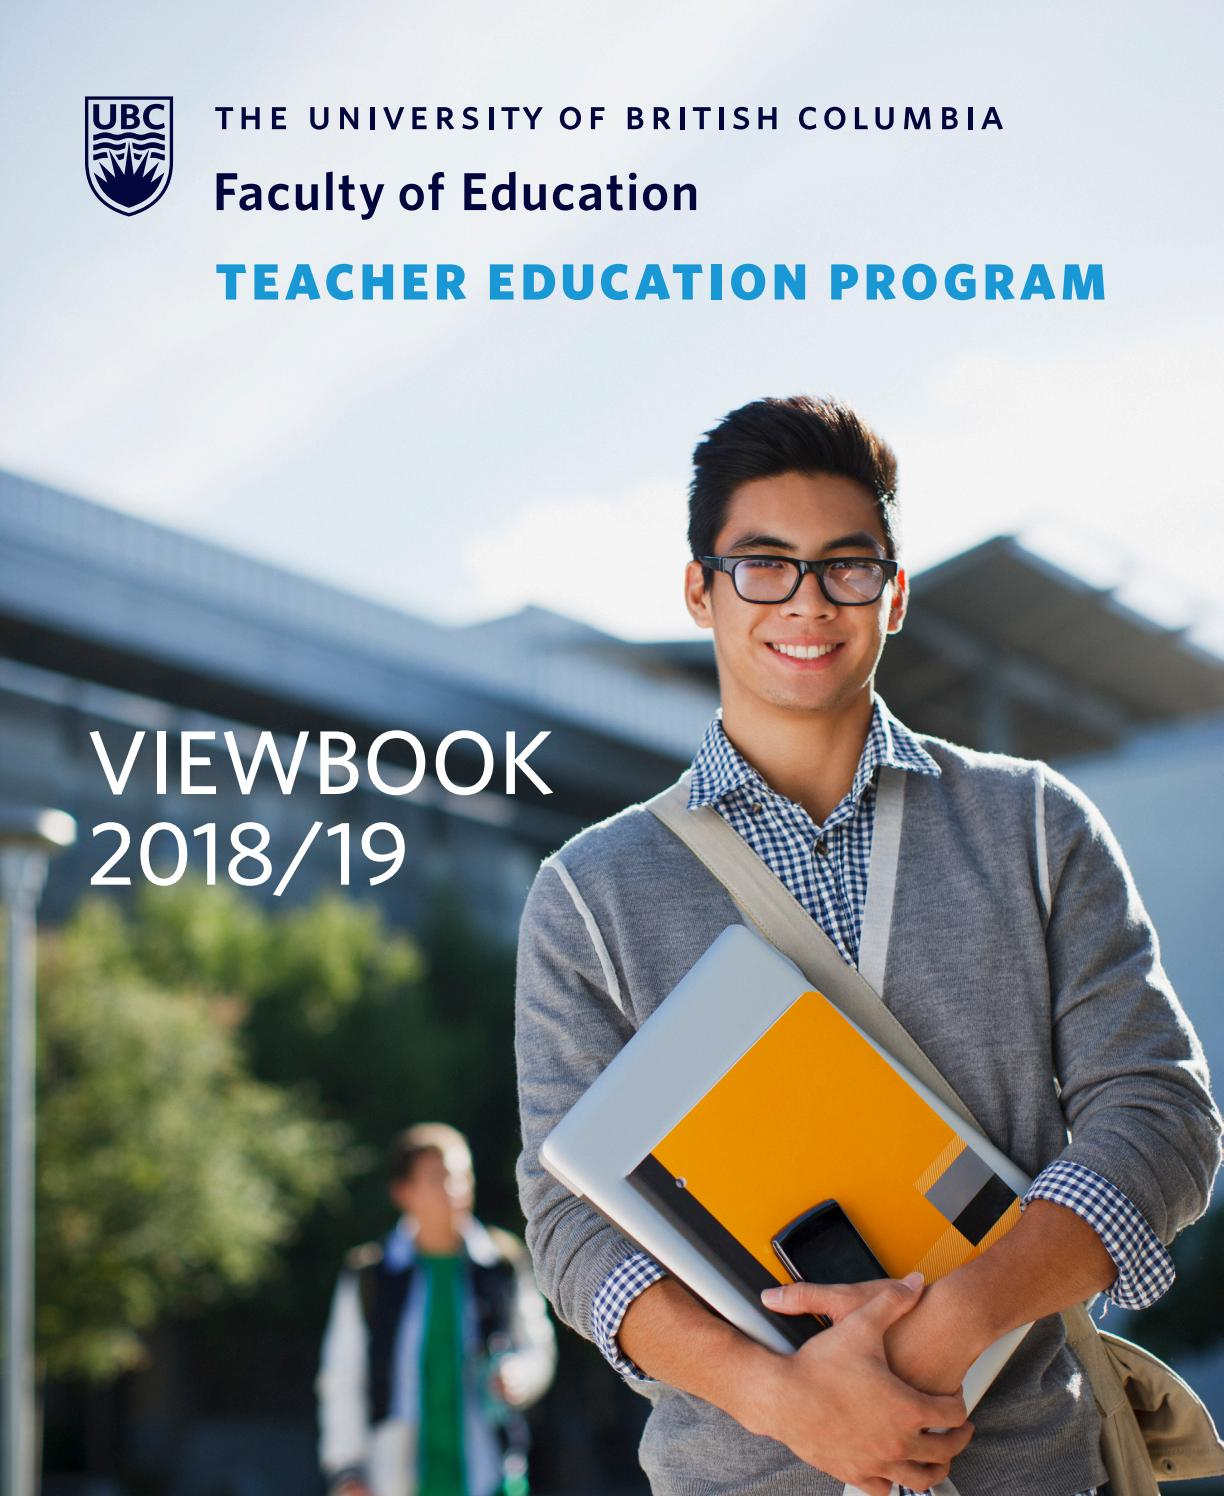 University Of British Columbia Teacher Education Program Viewbook - Home Economics Teacher Ubc